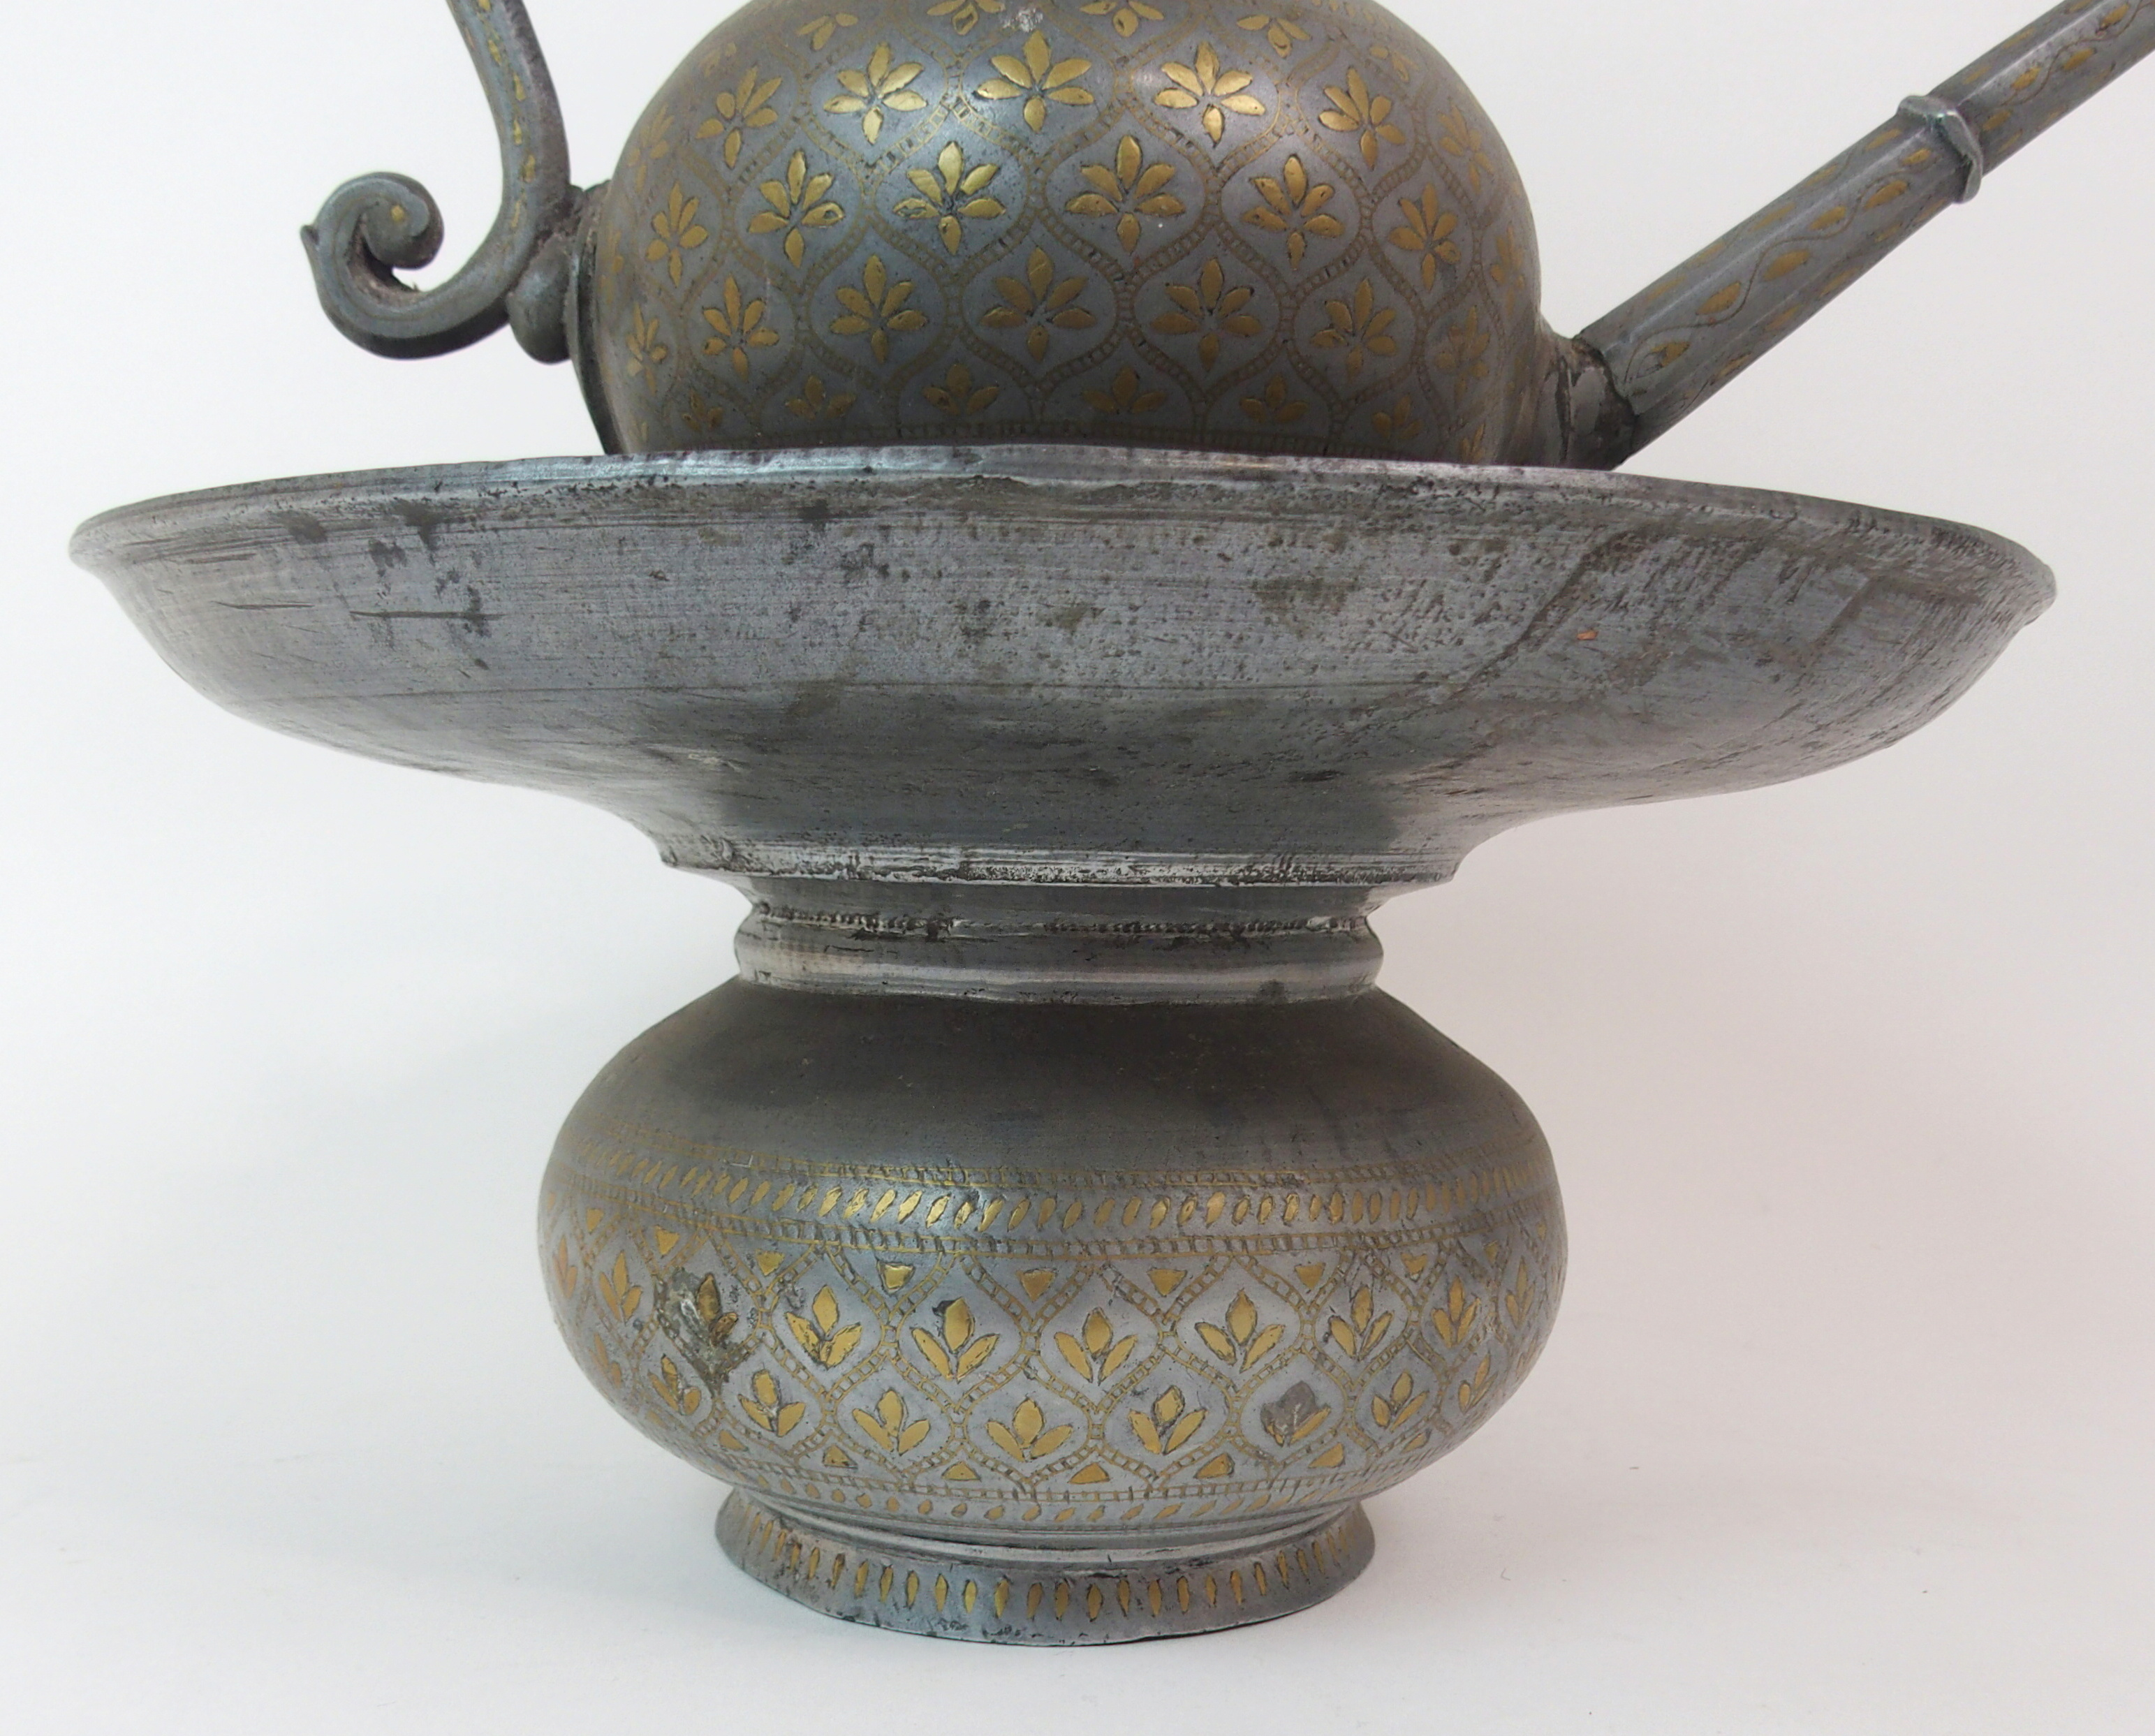 Lot 55 - A BIDRI STEEL INLAID EWER AND BASIN each decorated with gilt foliate bands within stylised